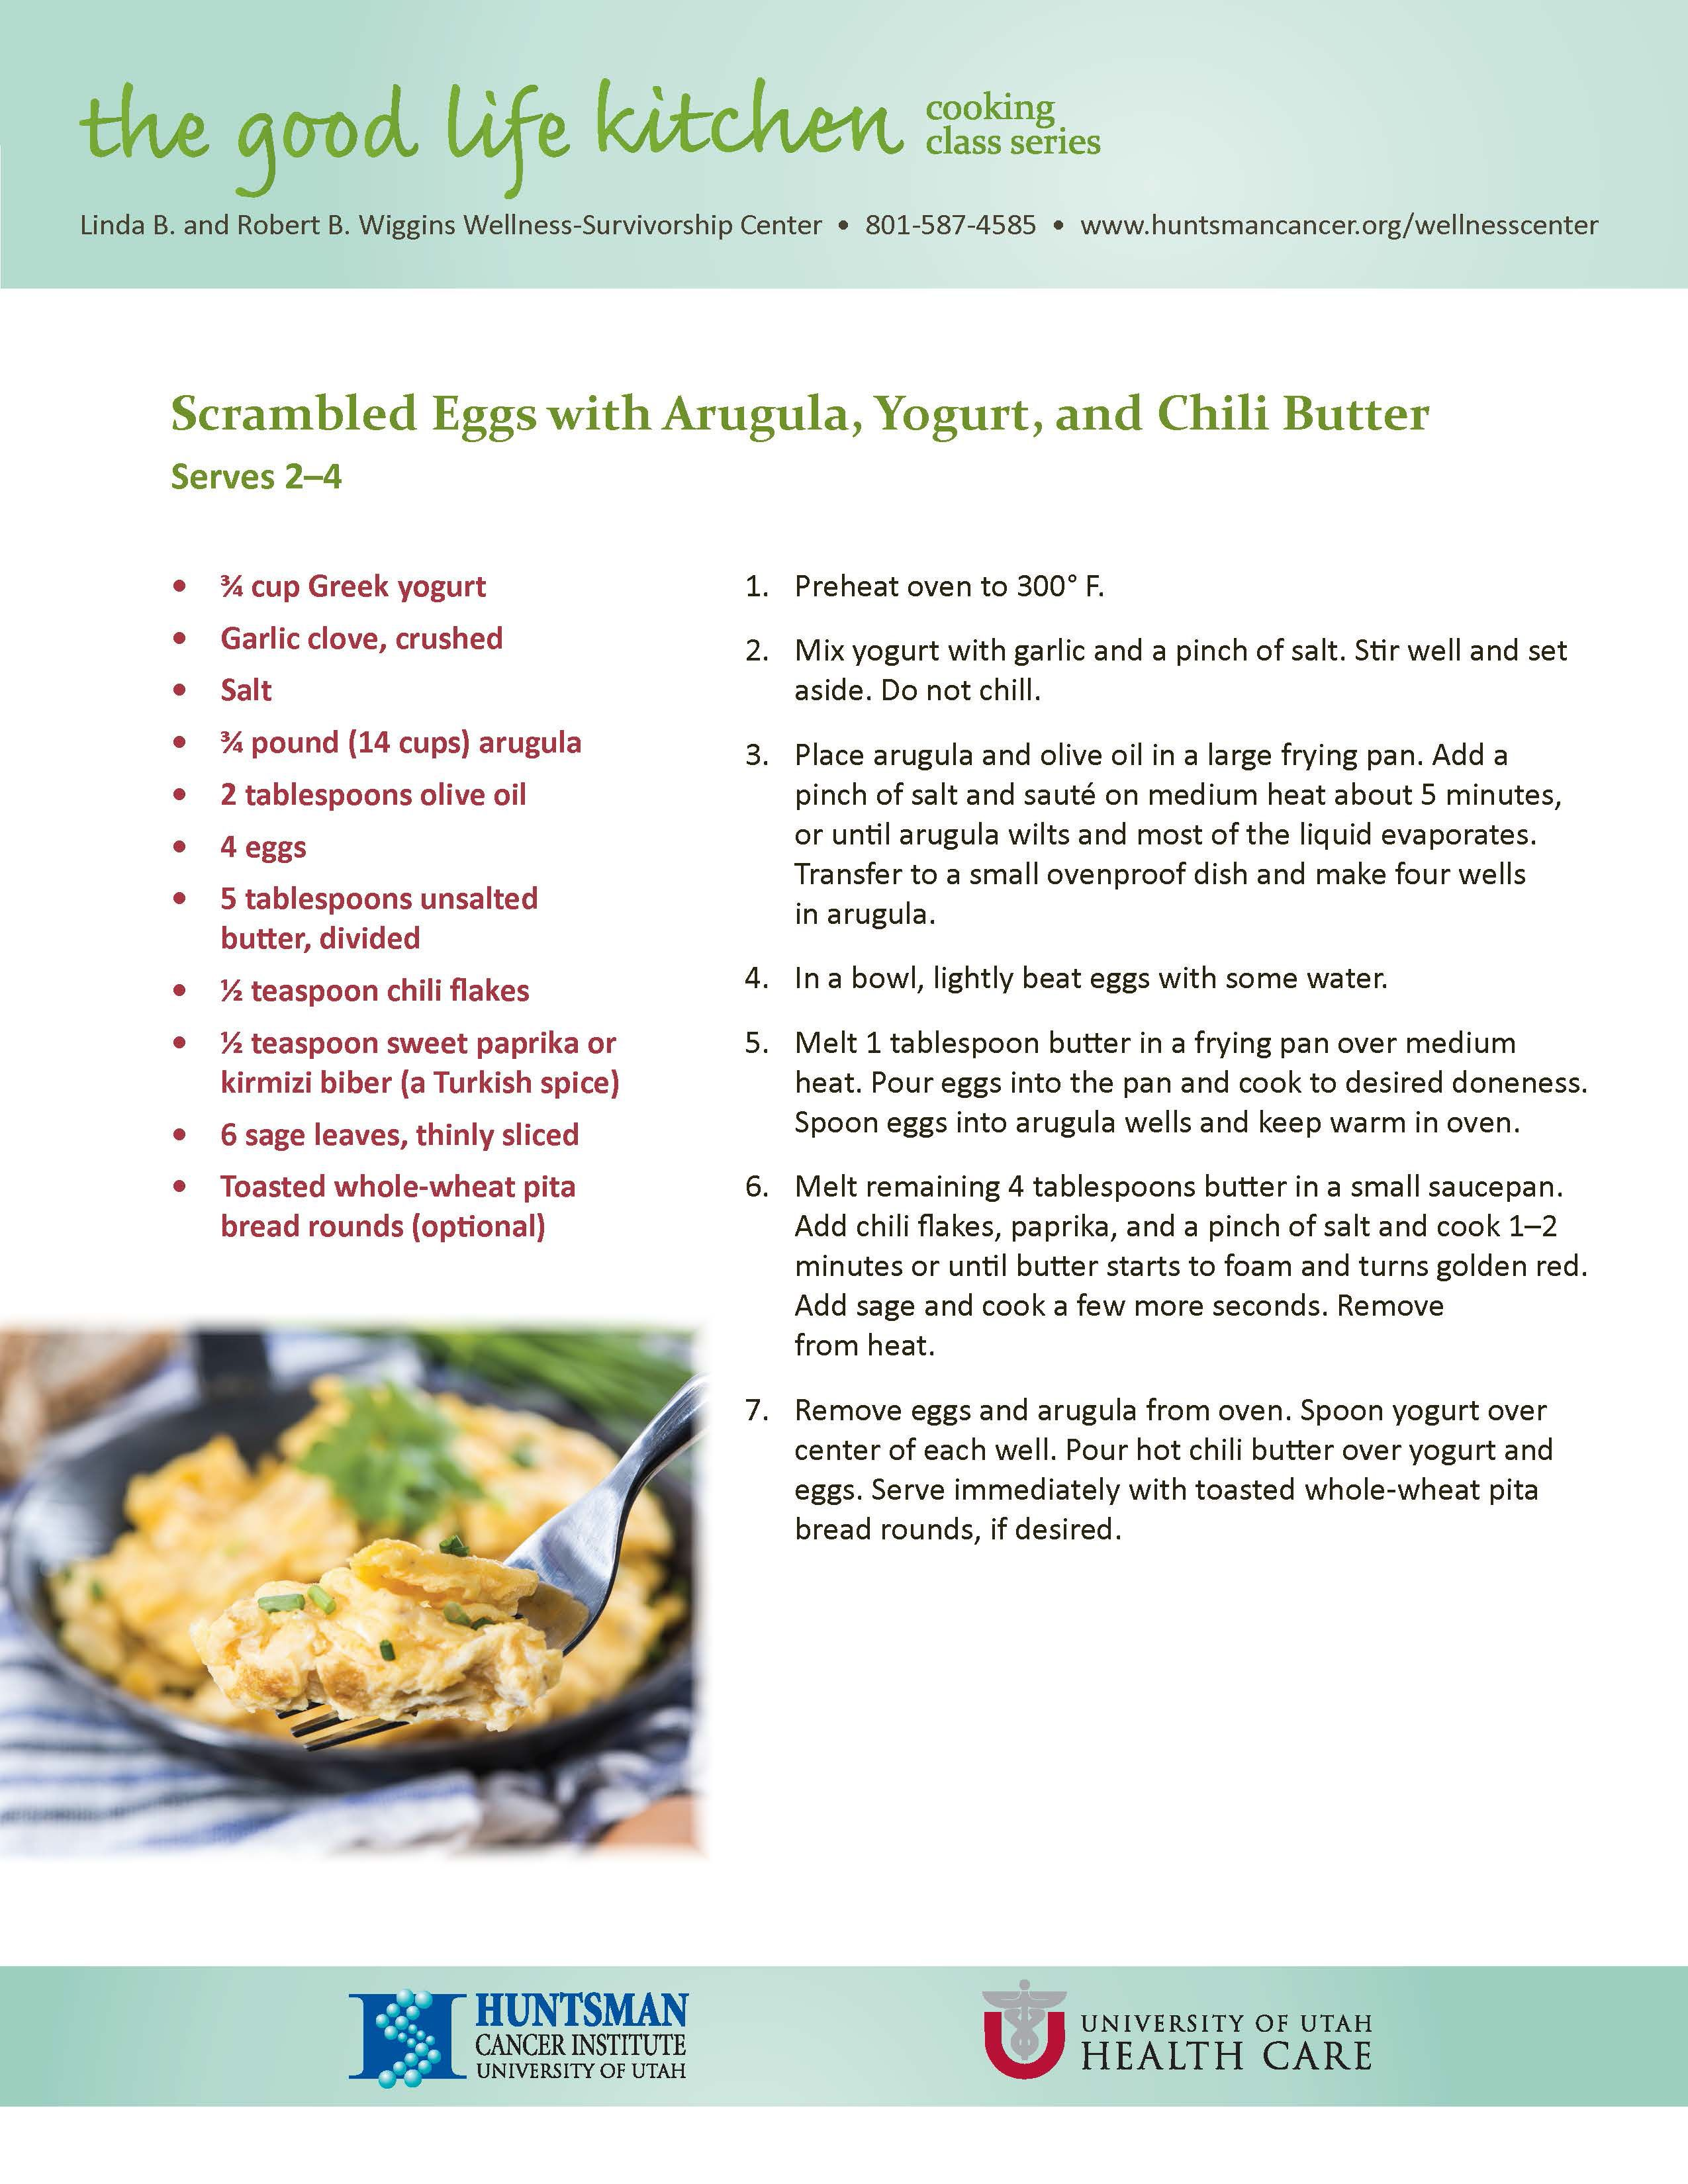 This healthy recipe for Scrambled Eggs is from HCI's